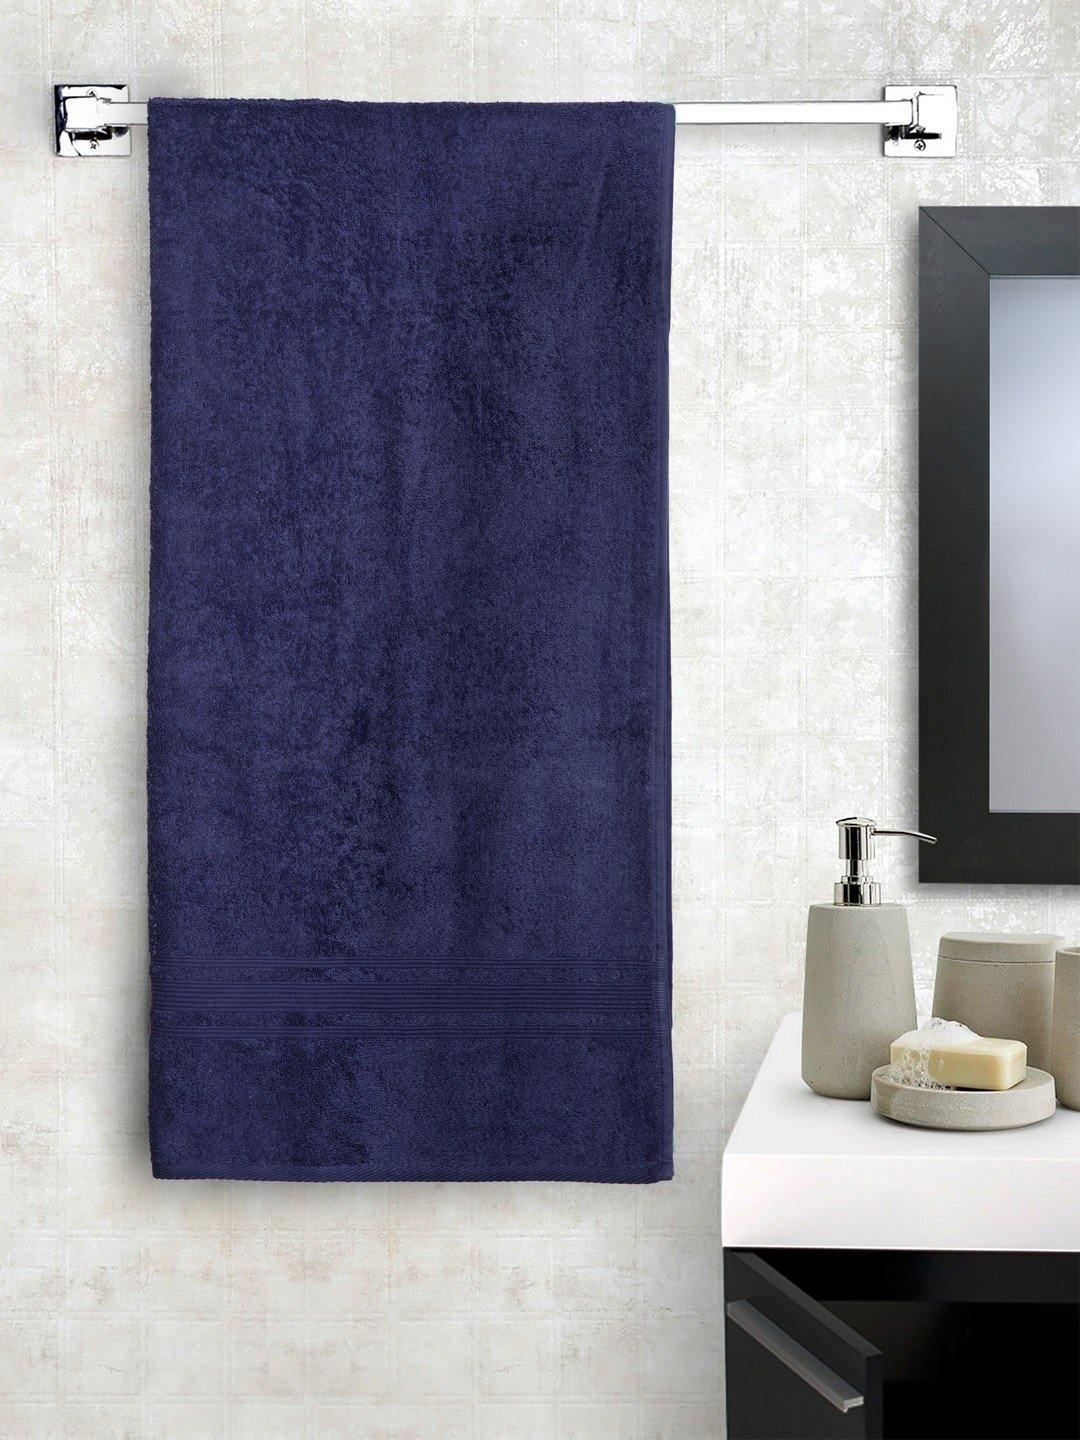 "Lushomes Navy Super Soft and Fluffy Cotton Turkish Bath towel Size 24"" x 48""� (60 x 120 cms, single pc) - Lushomes"